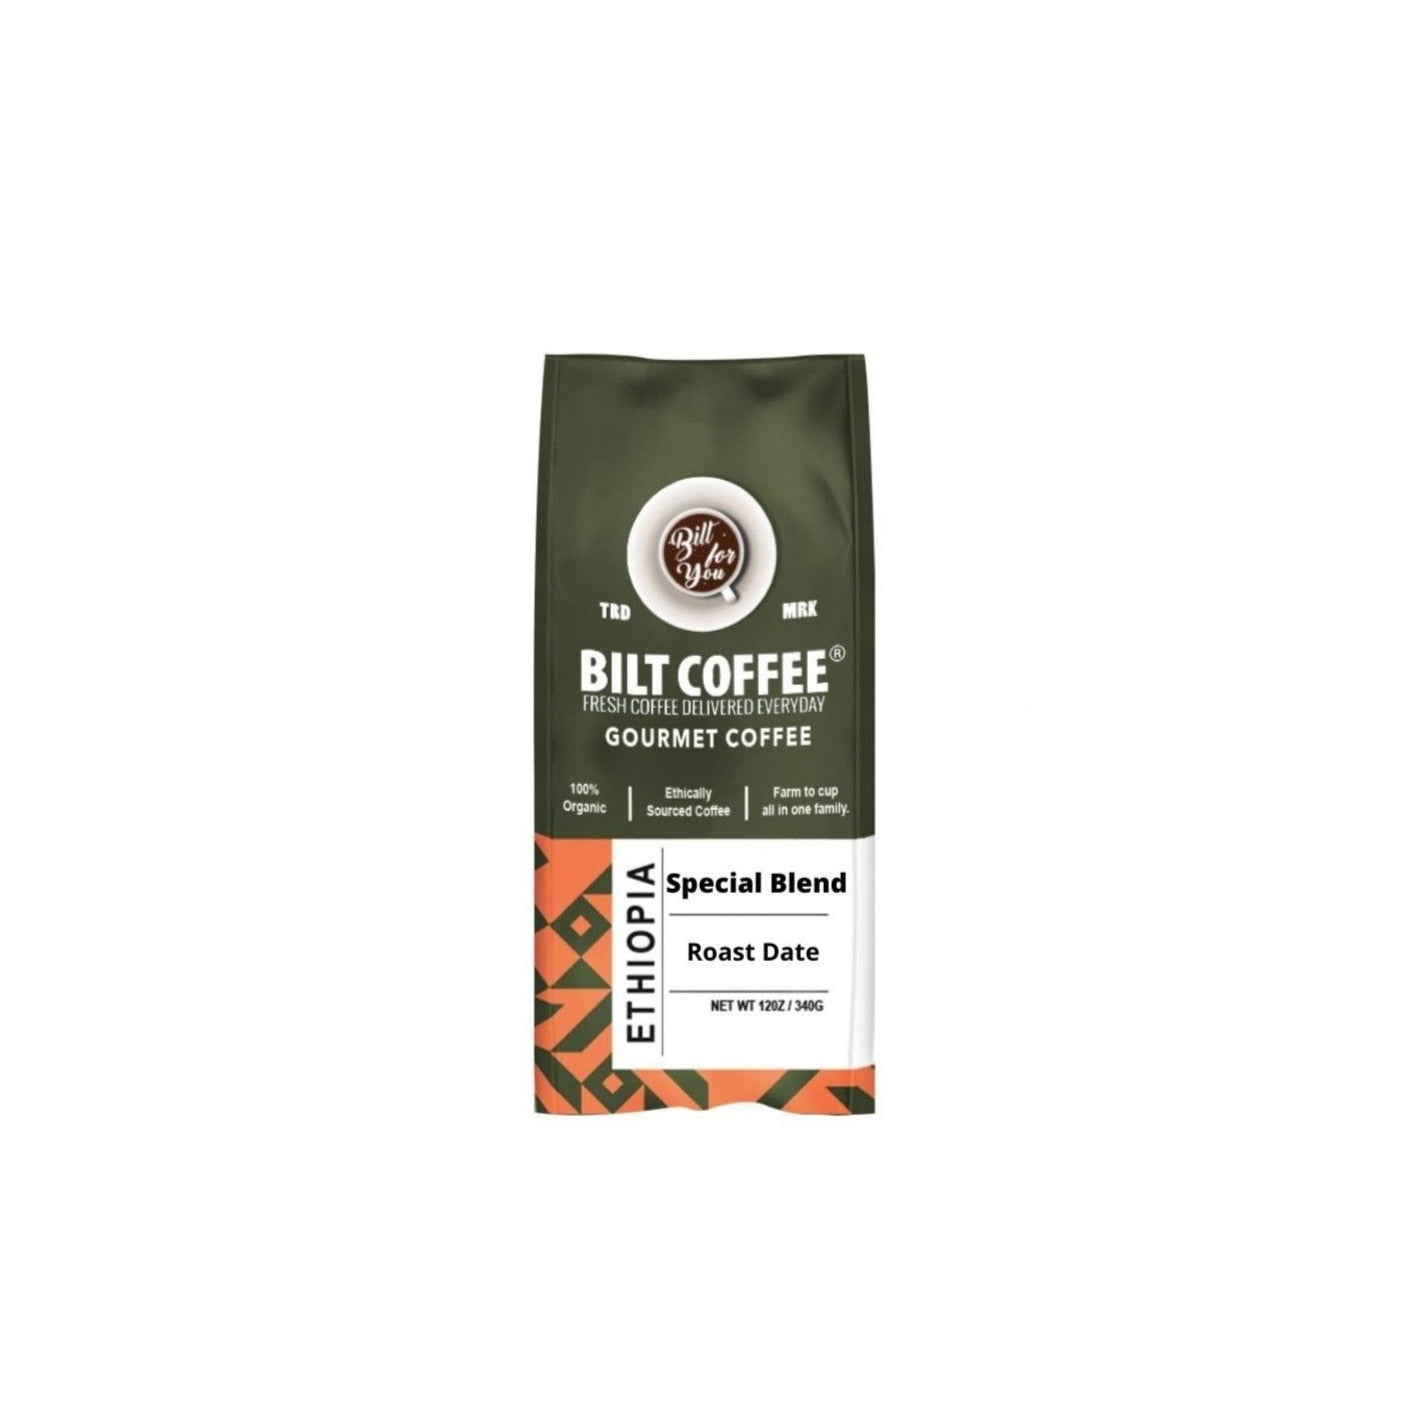 Organic Special Blend Coffee - 1 bags